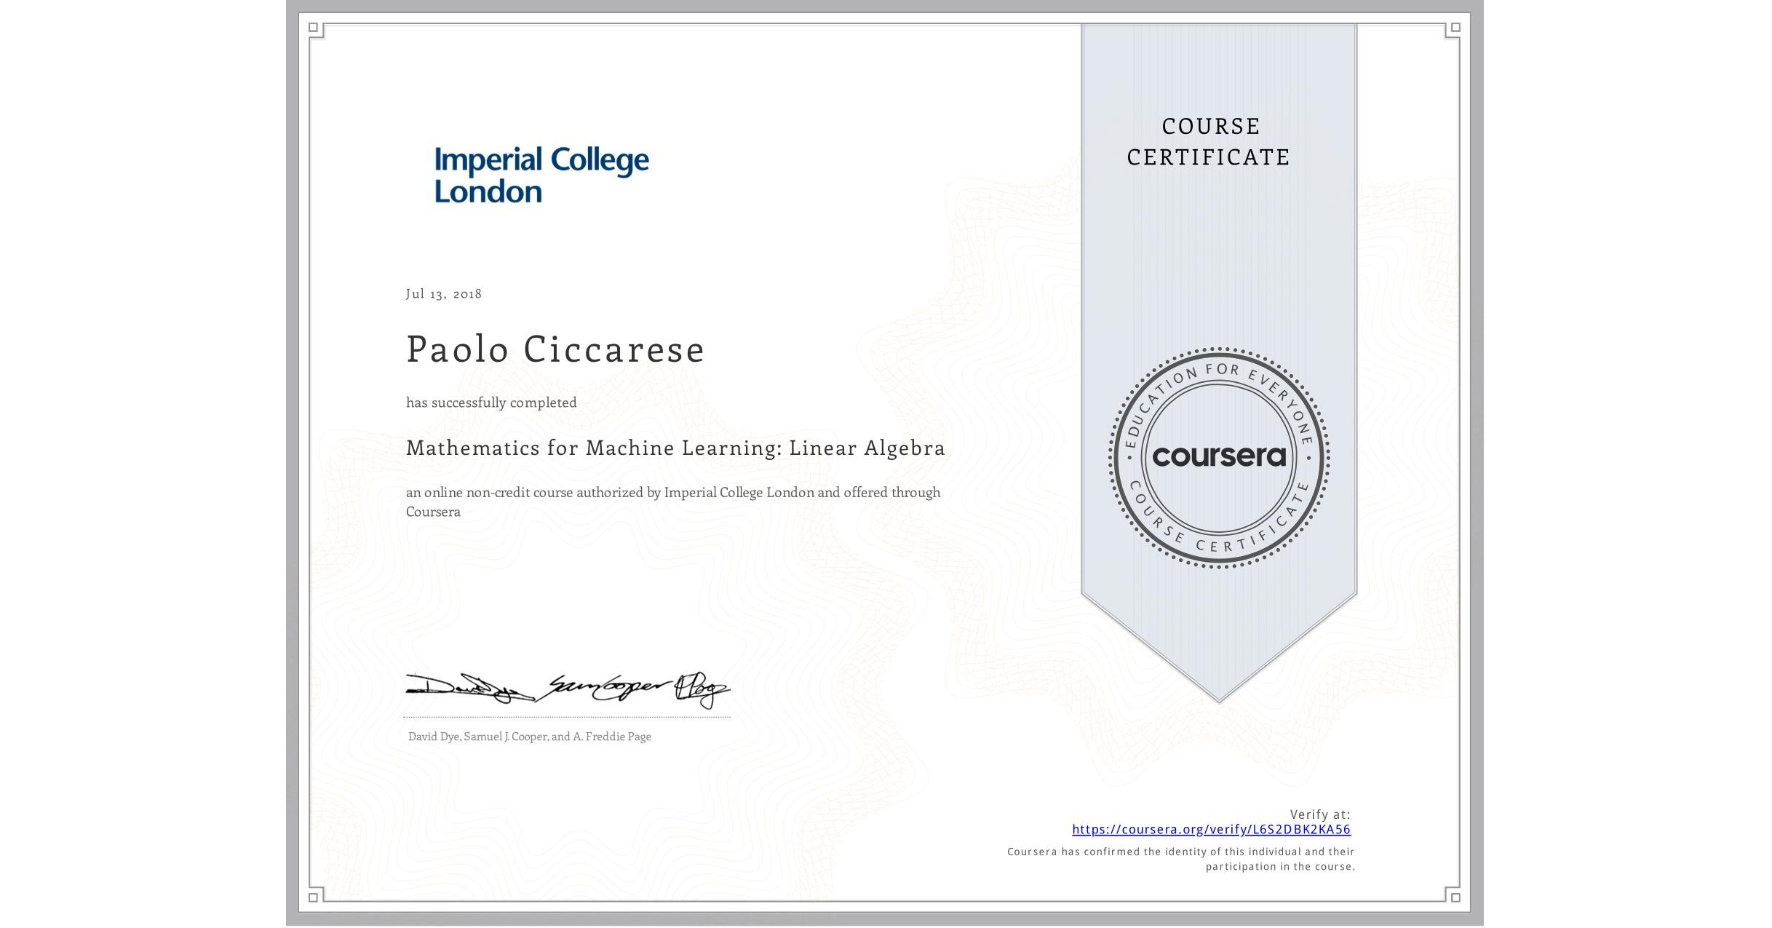 View certificate for Paolo Ciccarese, Mathematics for Machine Learning: Linear Algebra, an online non-credit course authorized by Imperial College London and offered through Coursera